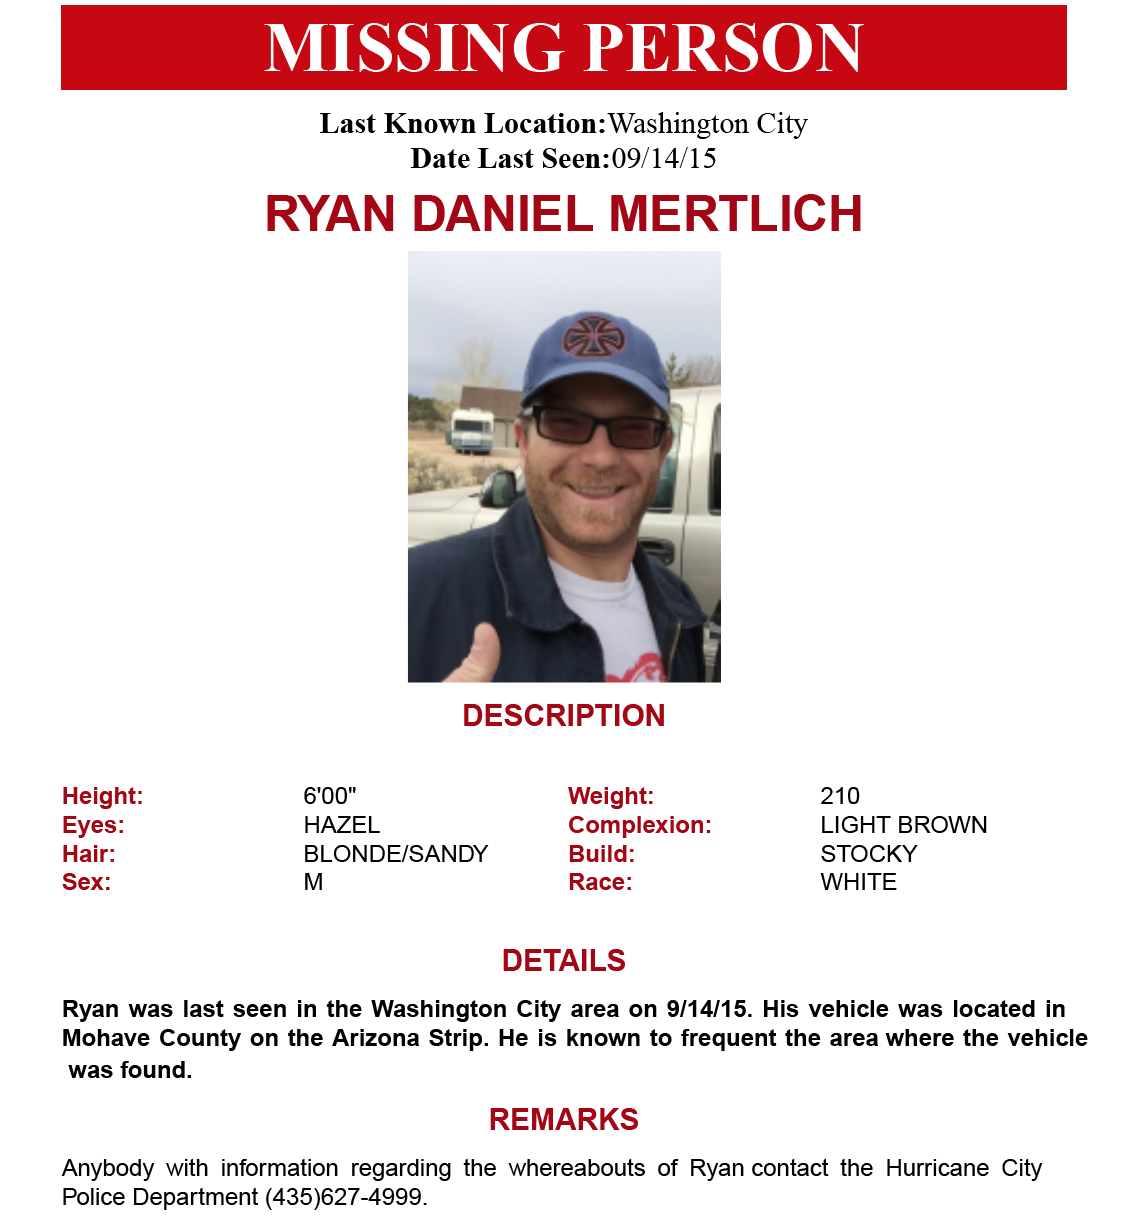 Missing Person: Ryan Mertlich | Sept. 17, 2015, Flyer Courtesy Of Hurricane  Missing Person Flyer